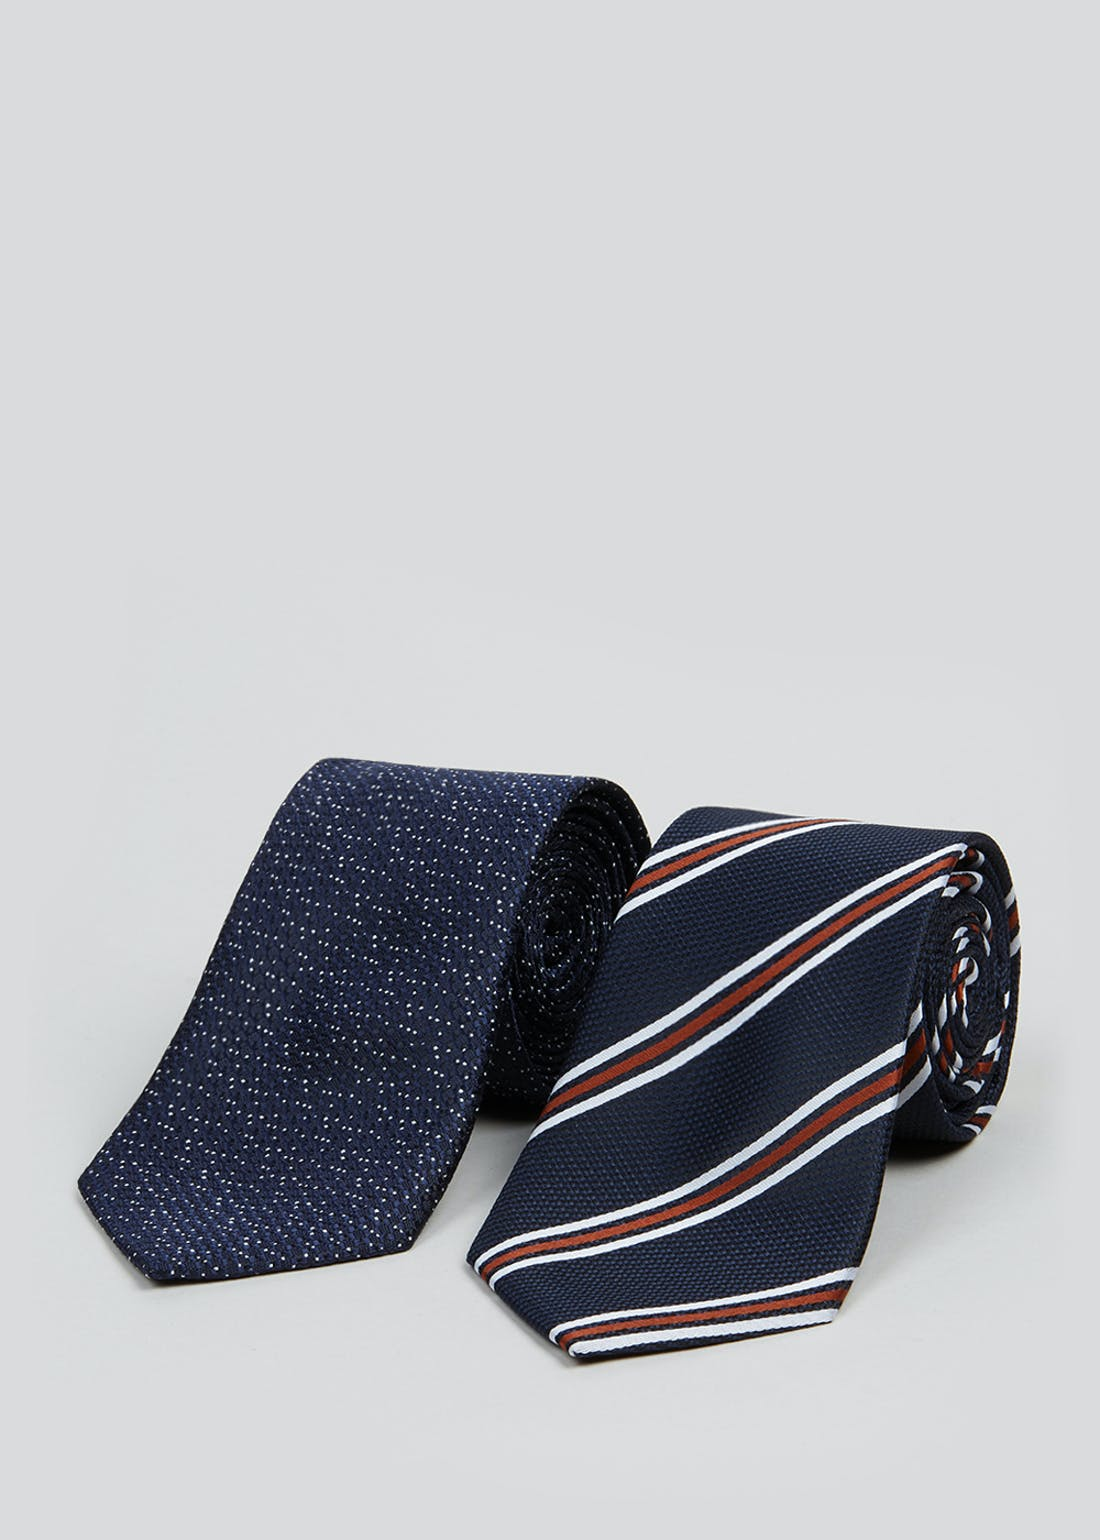 Taylor & Wright 2 Pack Ties